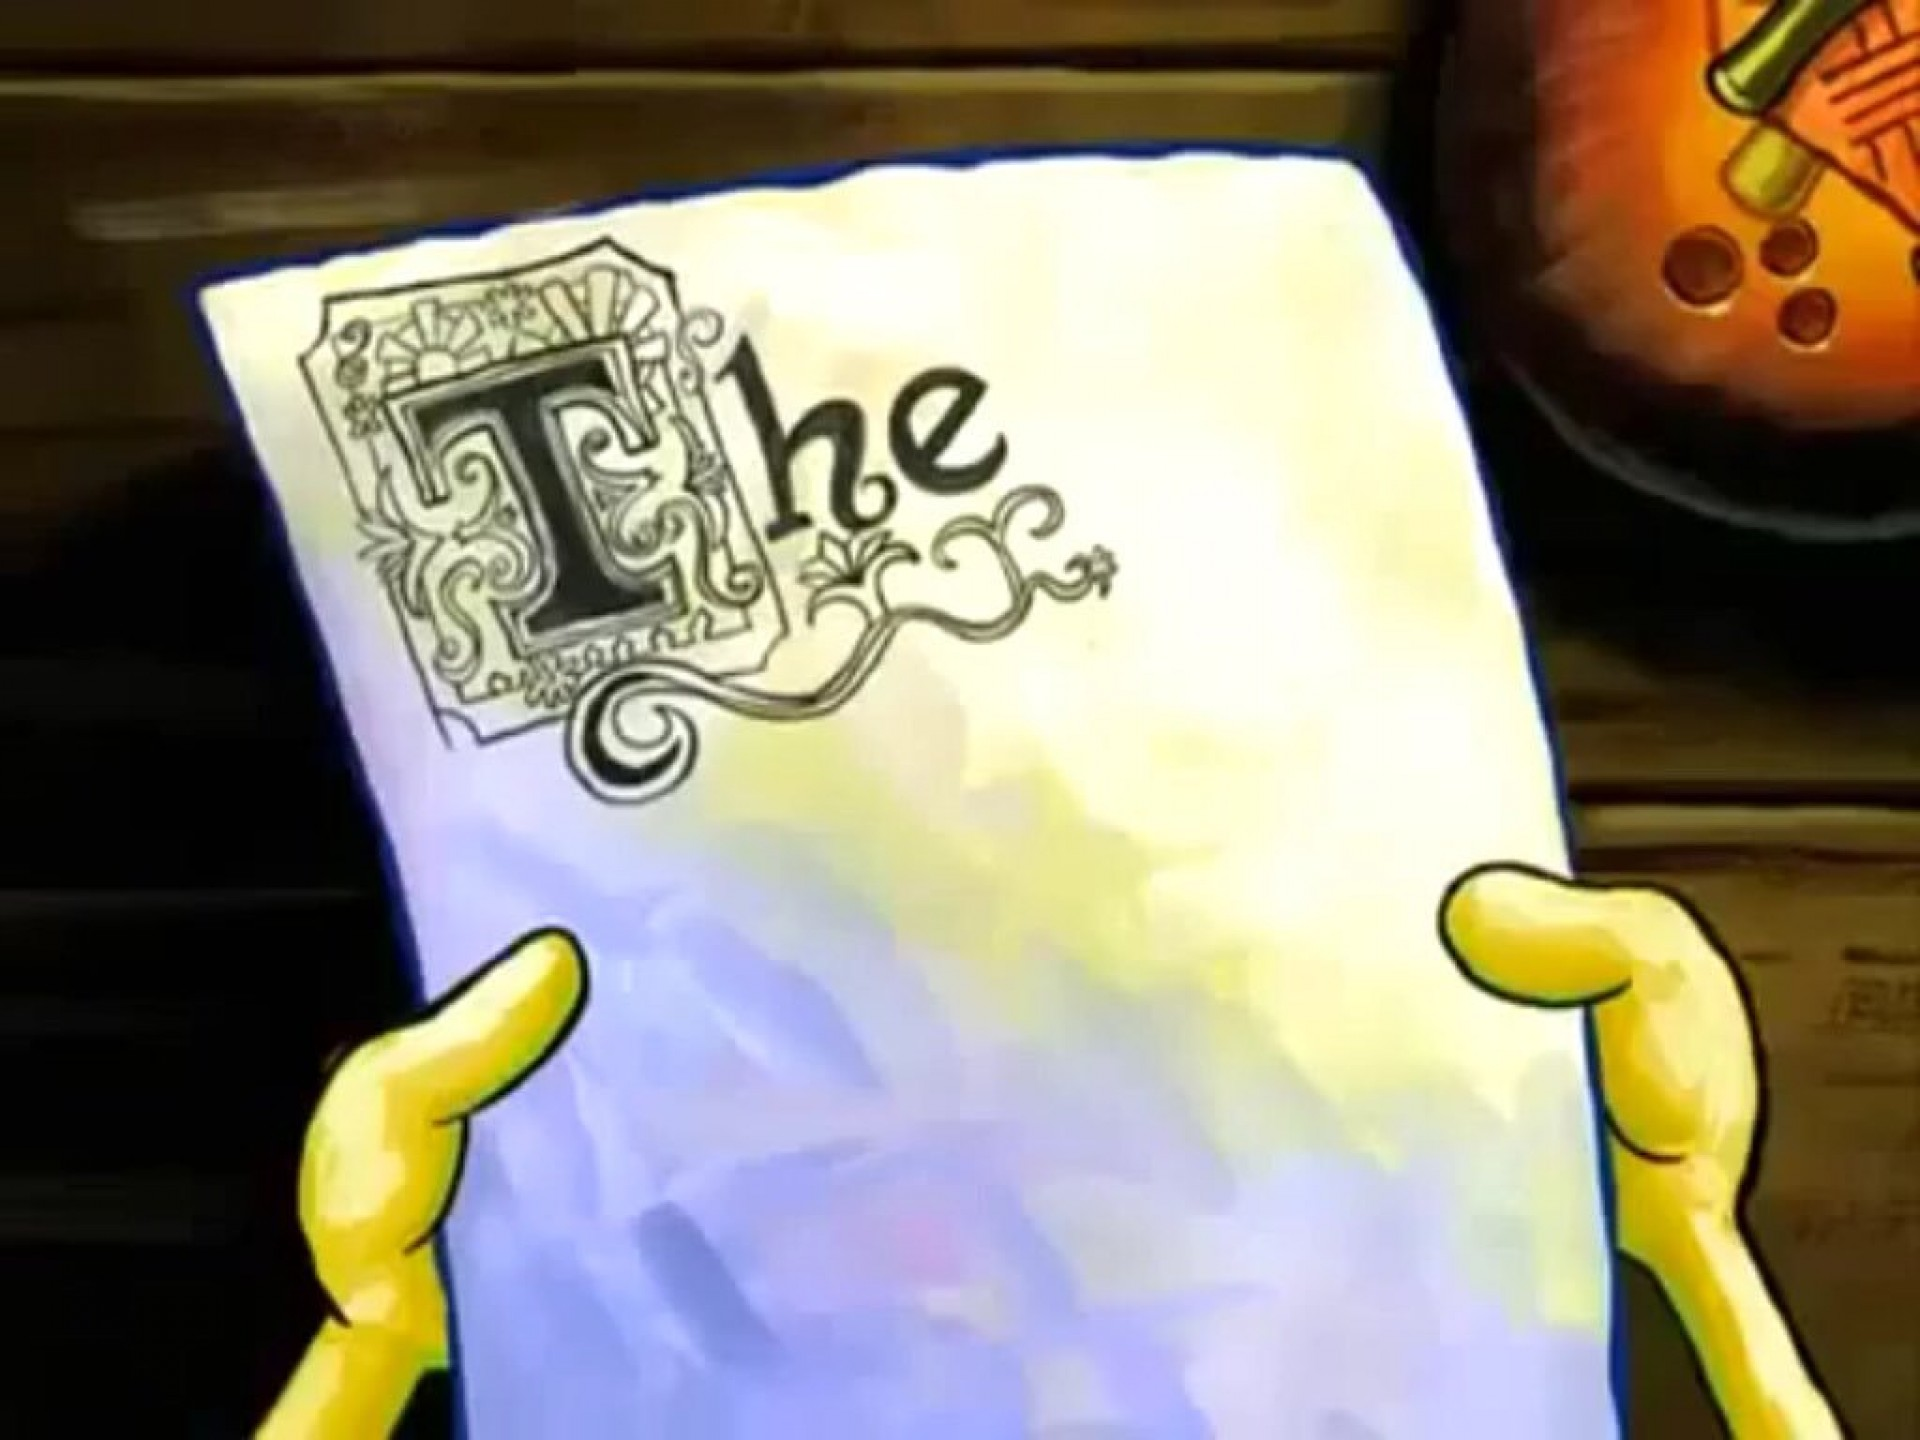 004 Spongebob The Essay Example Crimson Mayhem On Twitter Episode Procrastination Dlrxn2oxoa Breathtaking Full Gif 1920